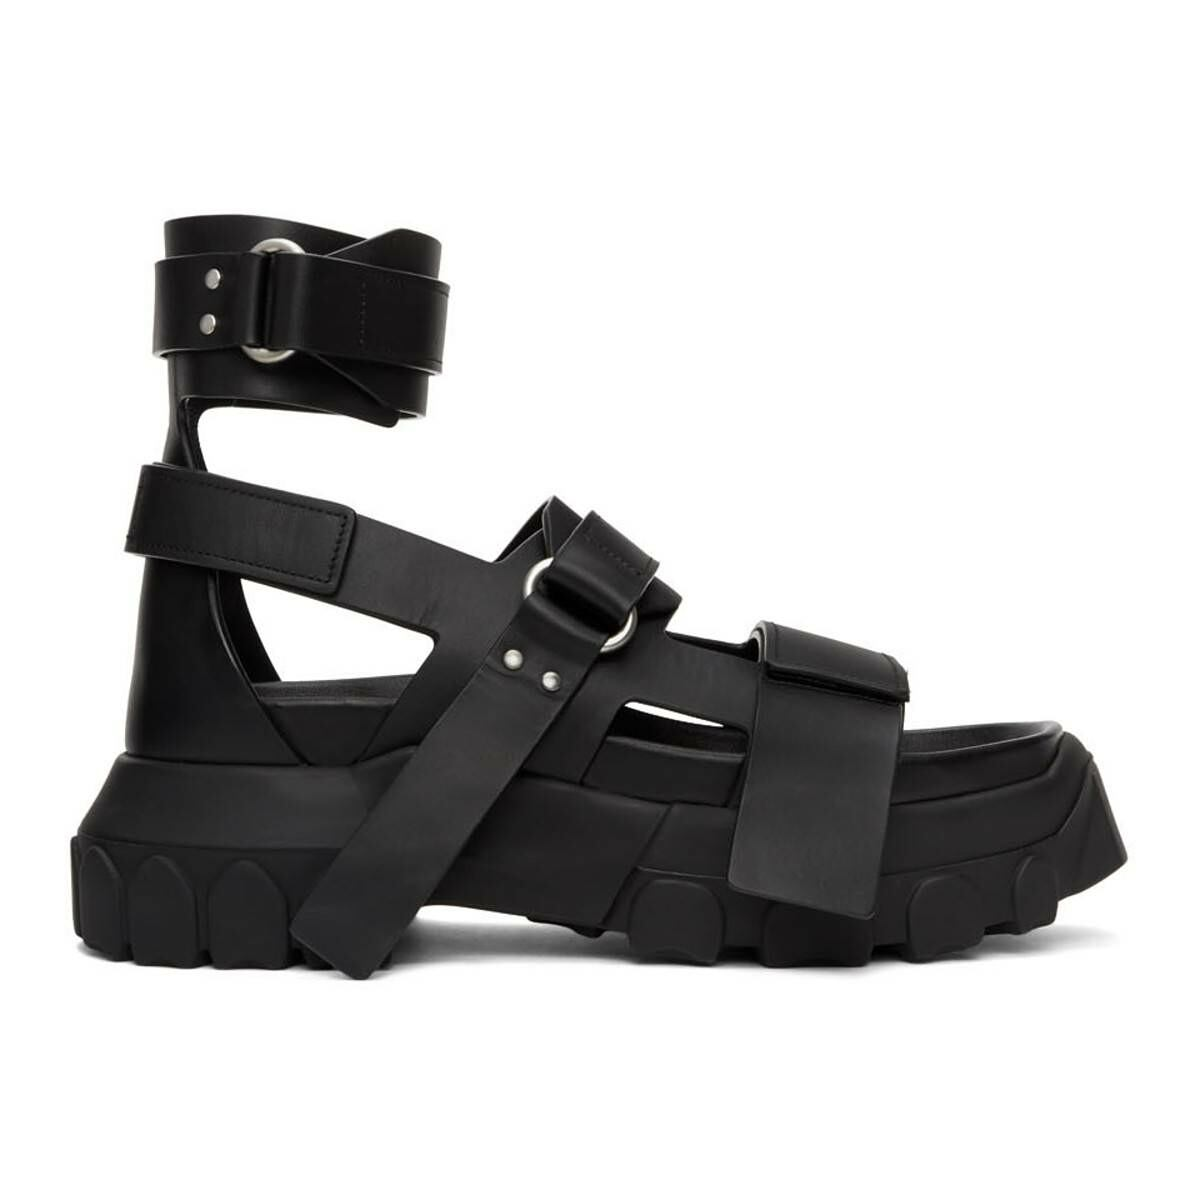 Rick Owens Black Ankle Strap Tractor Sandals Ssense USA MEN Men SHOES Mens SANDALS